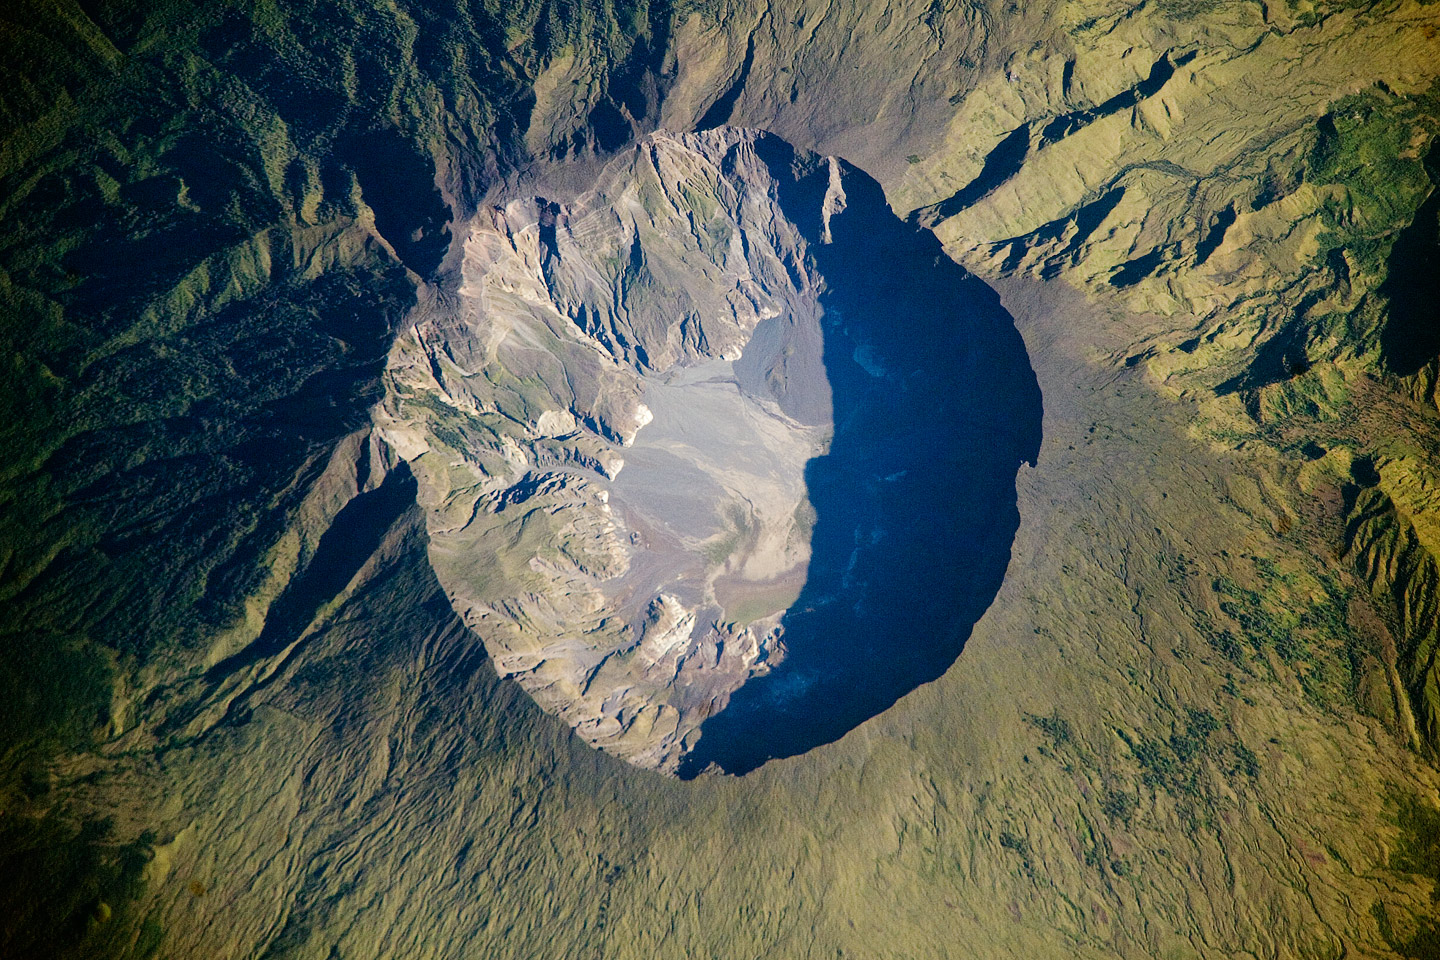 Tambora seen from the International Space Station in 2009. Image credit: NASA